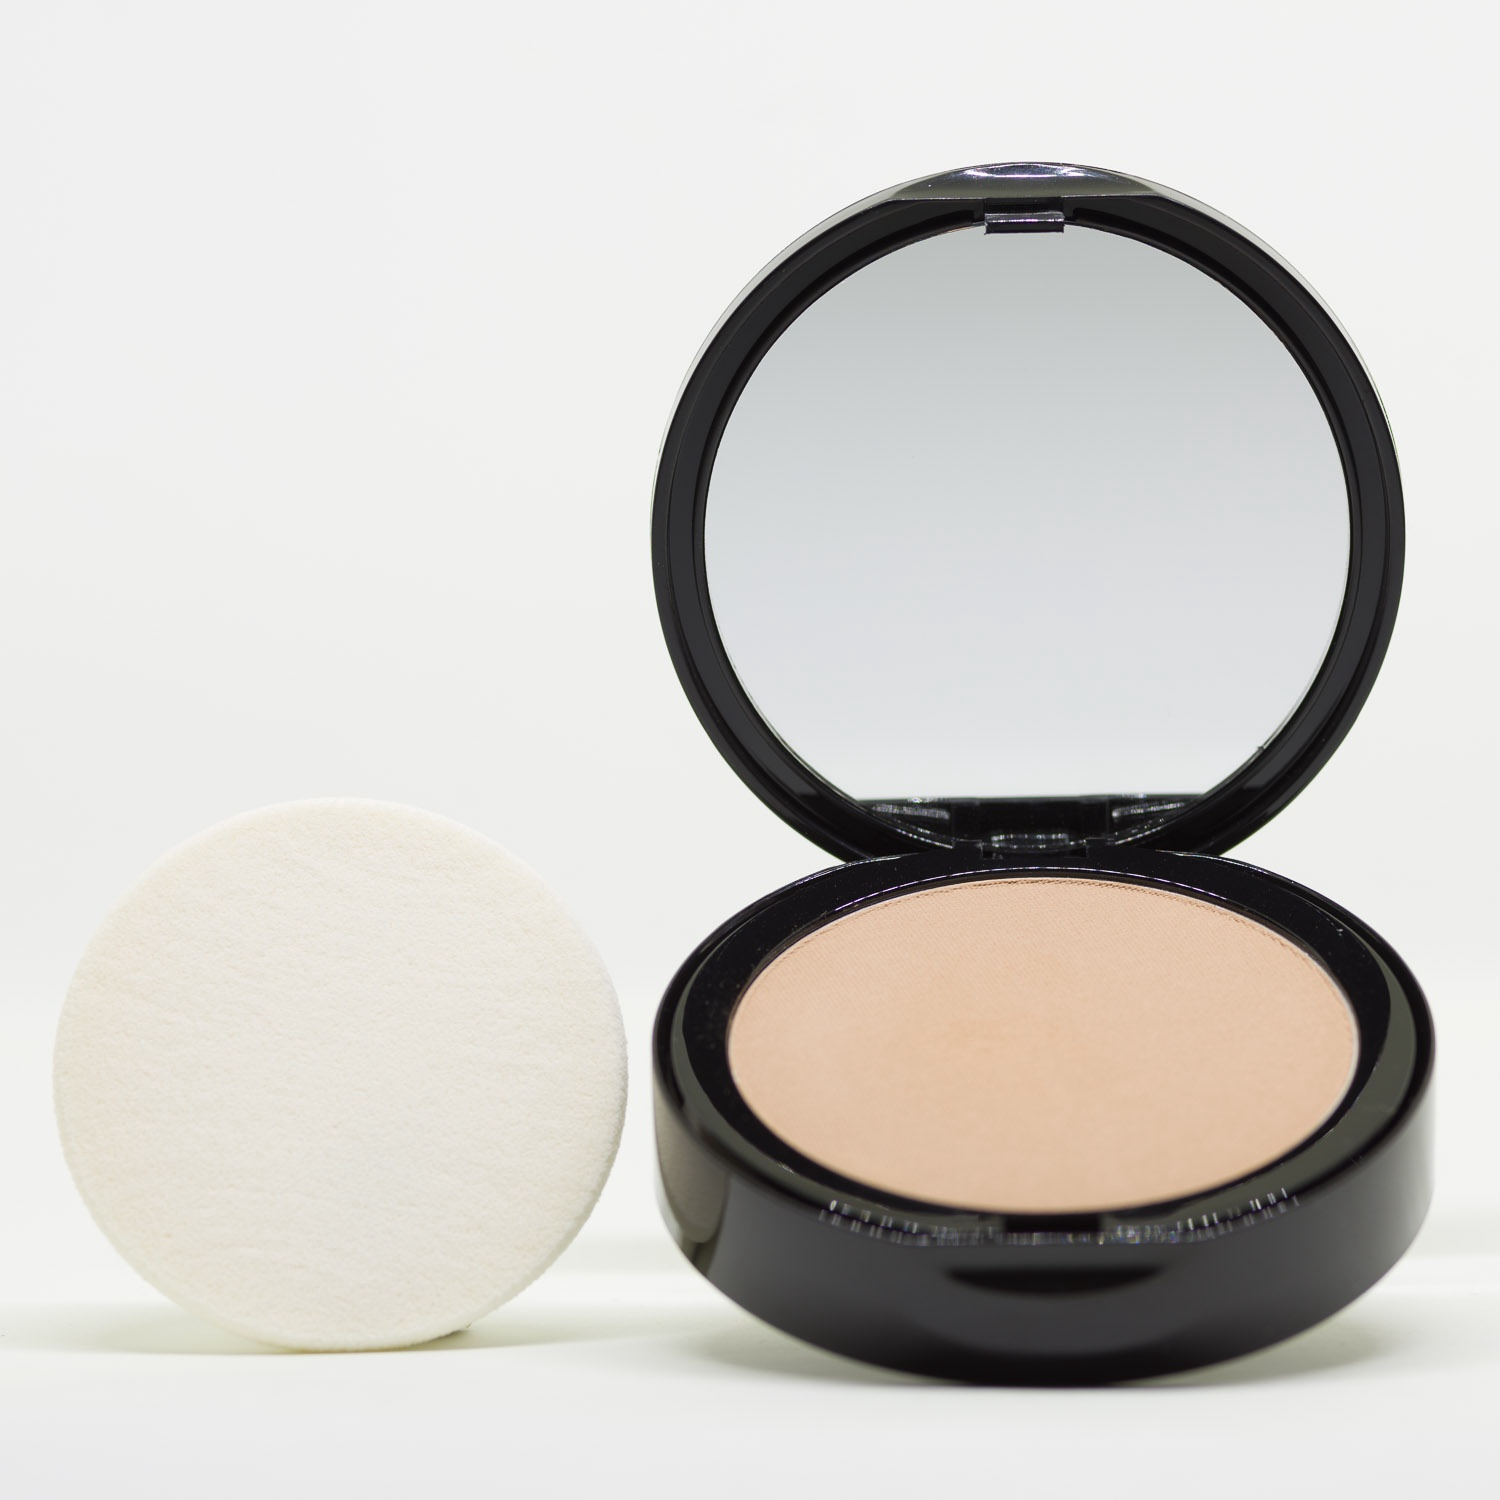 PN5 Cool Neutral Pressed Powder Mineral Foundation